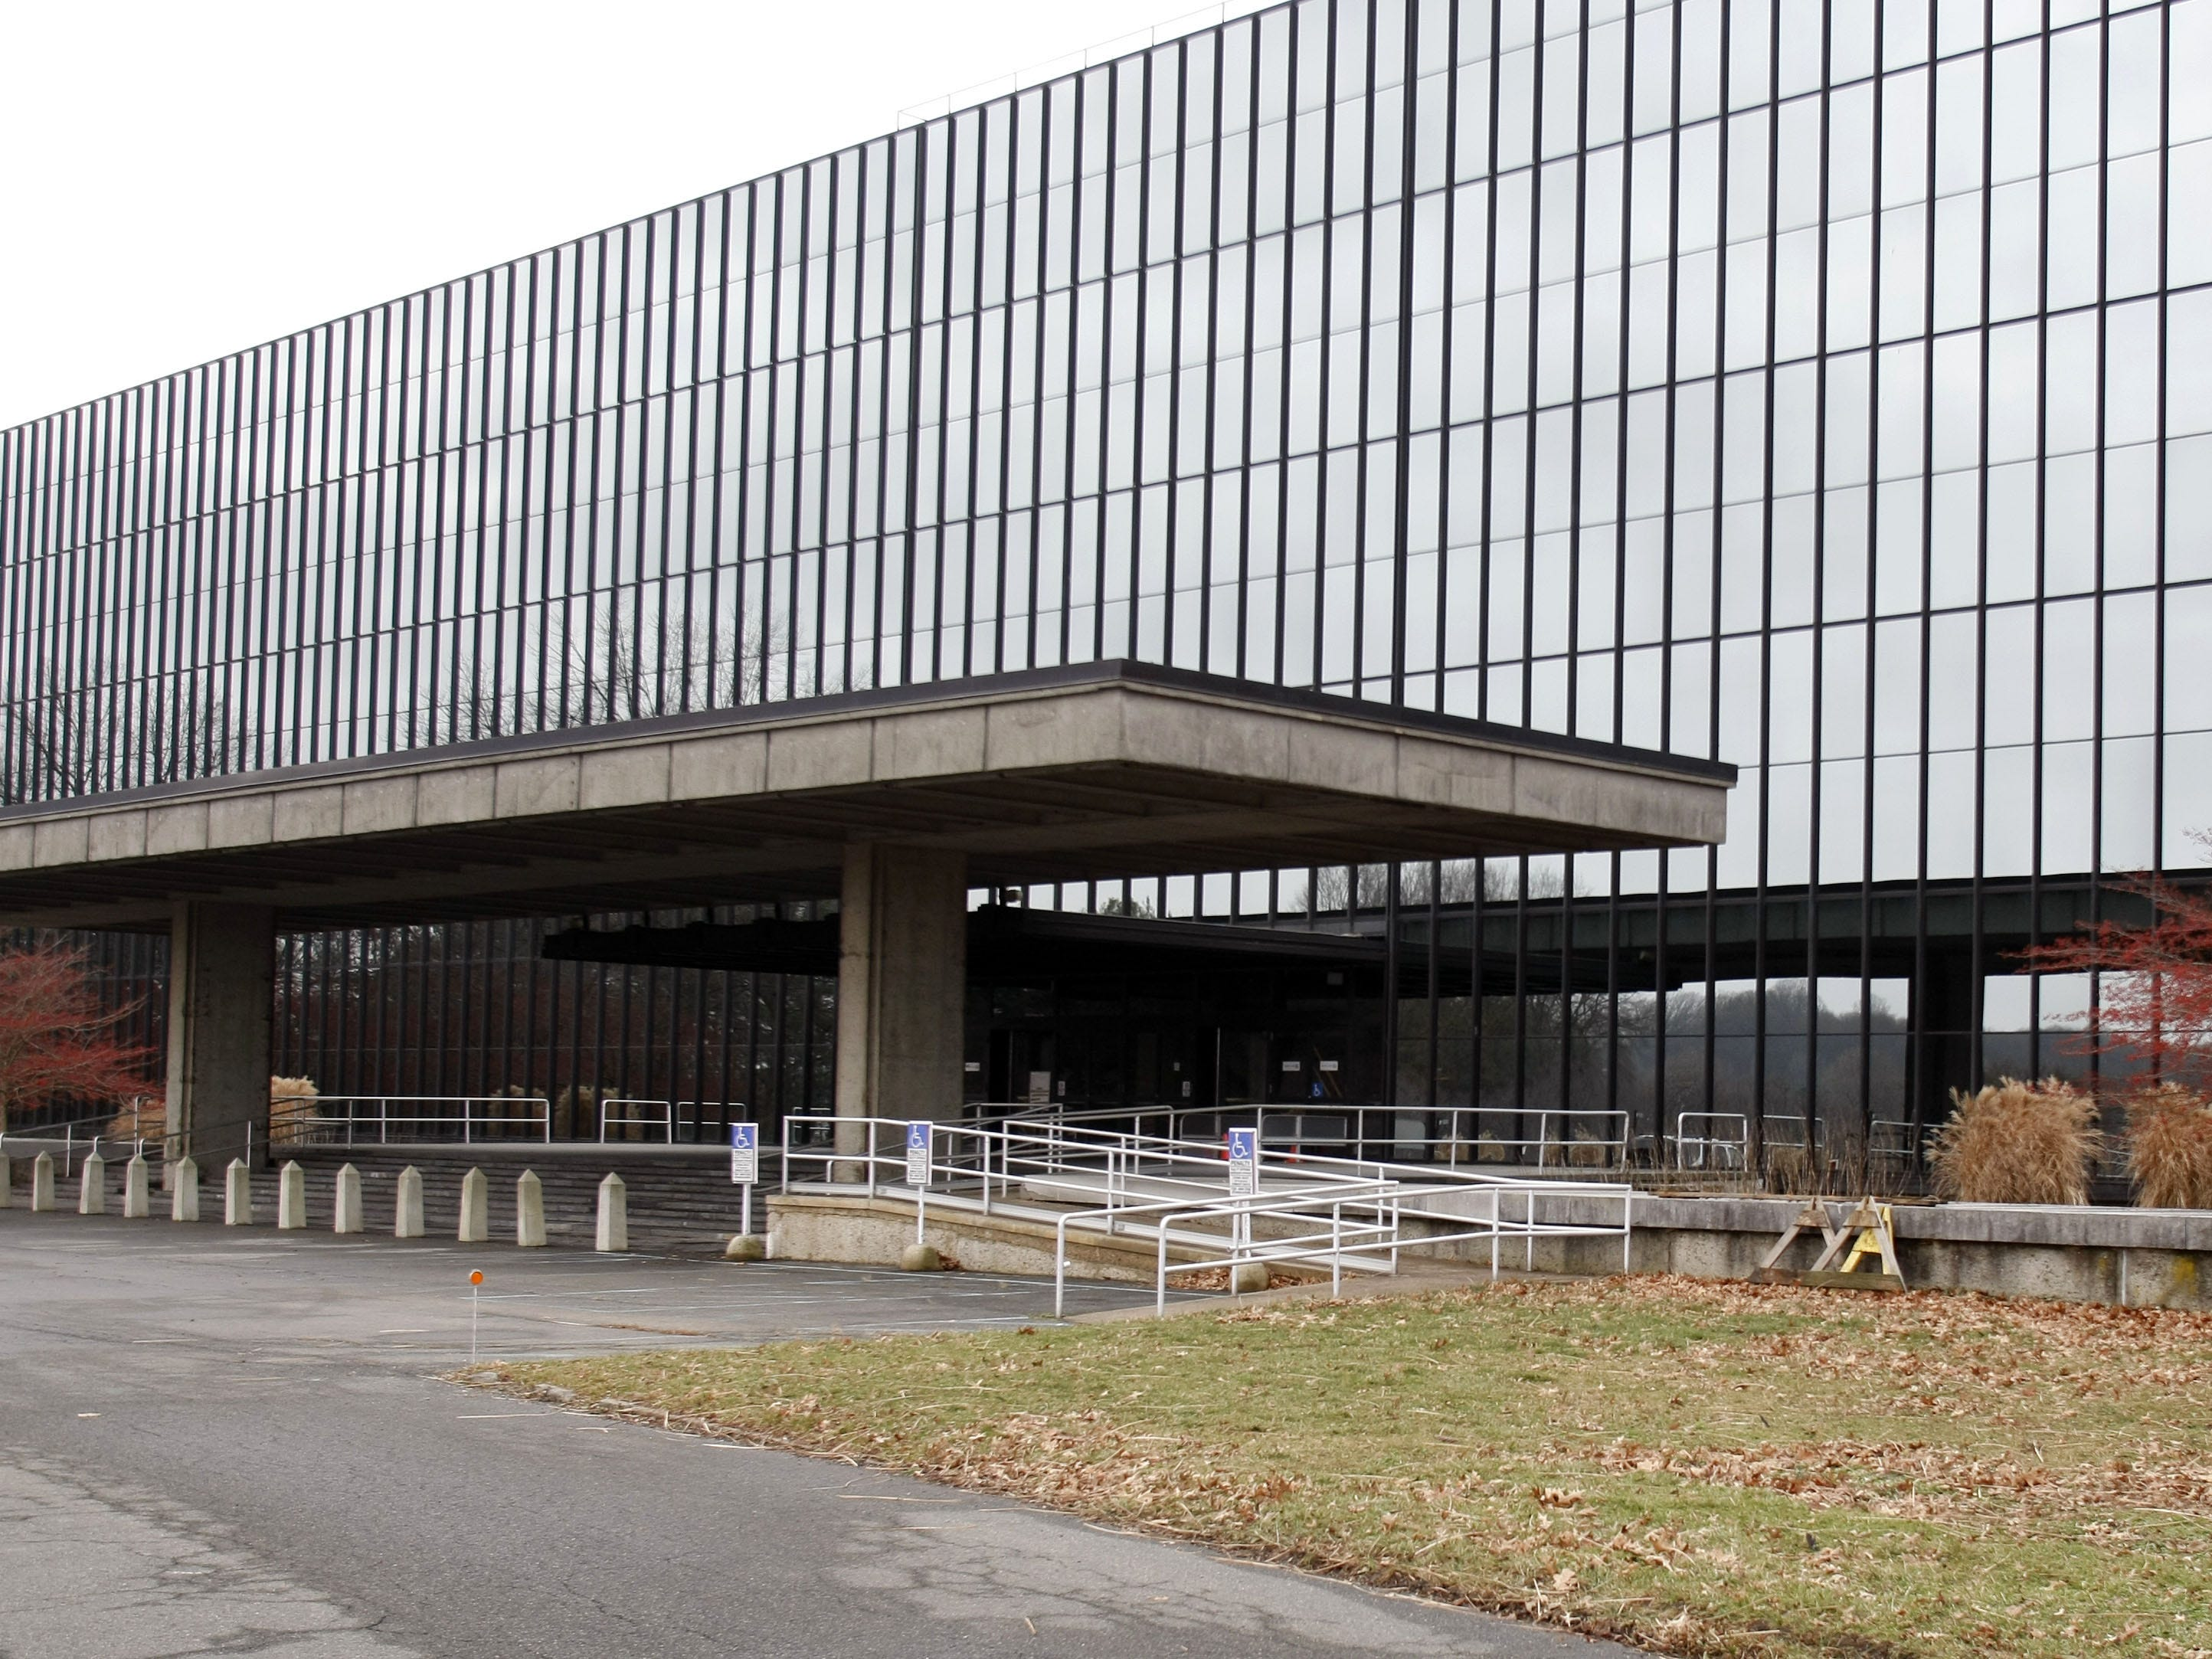 The former Bell Labs building which hosted the NJ Economic Policy Forum. Holmdel -- 12/15/09 --